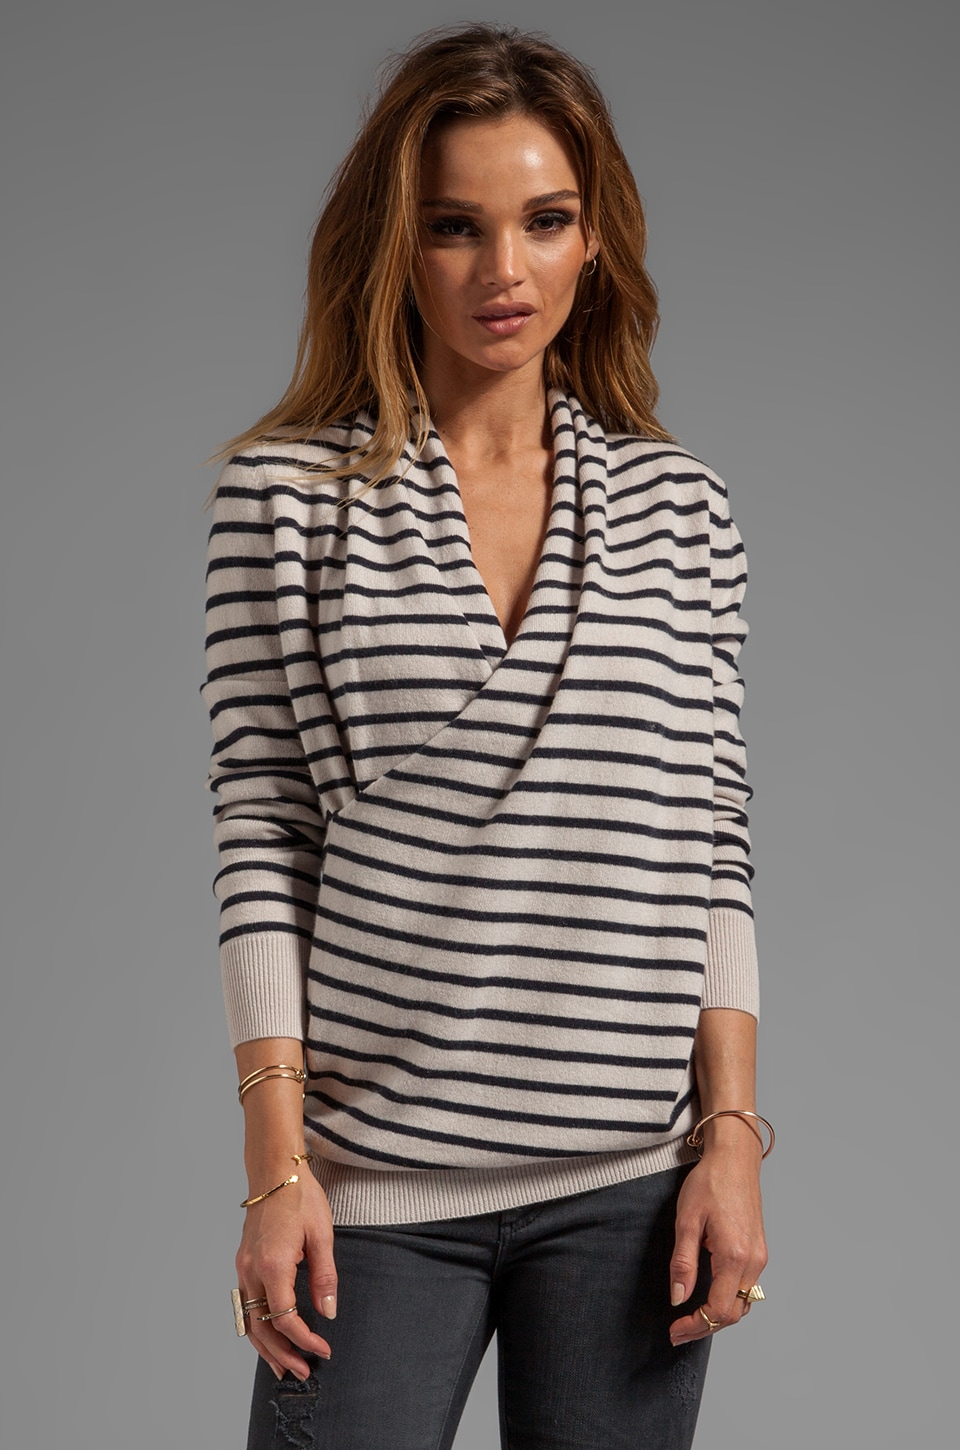 DemyLee Stripe Natalie Cashmere Sweater in Stone/Navy